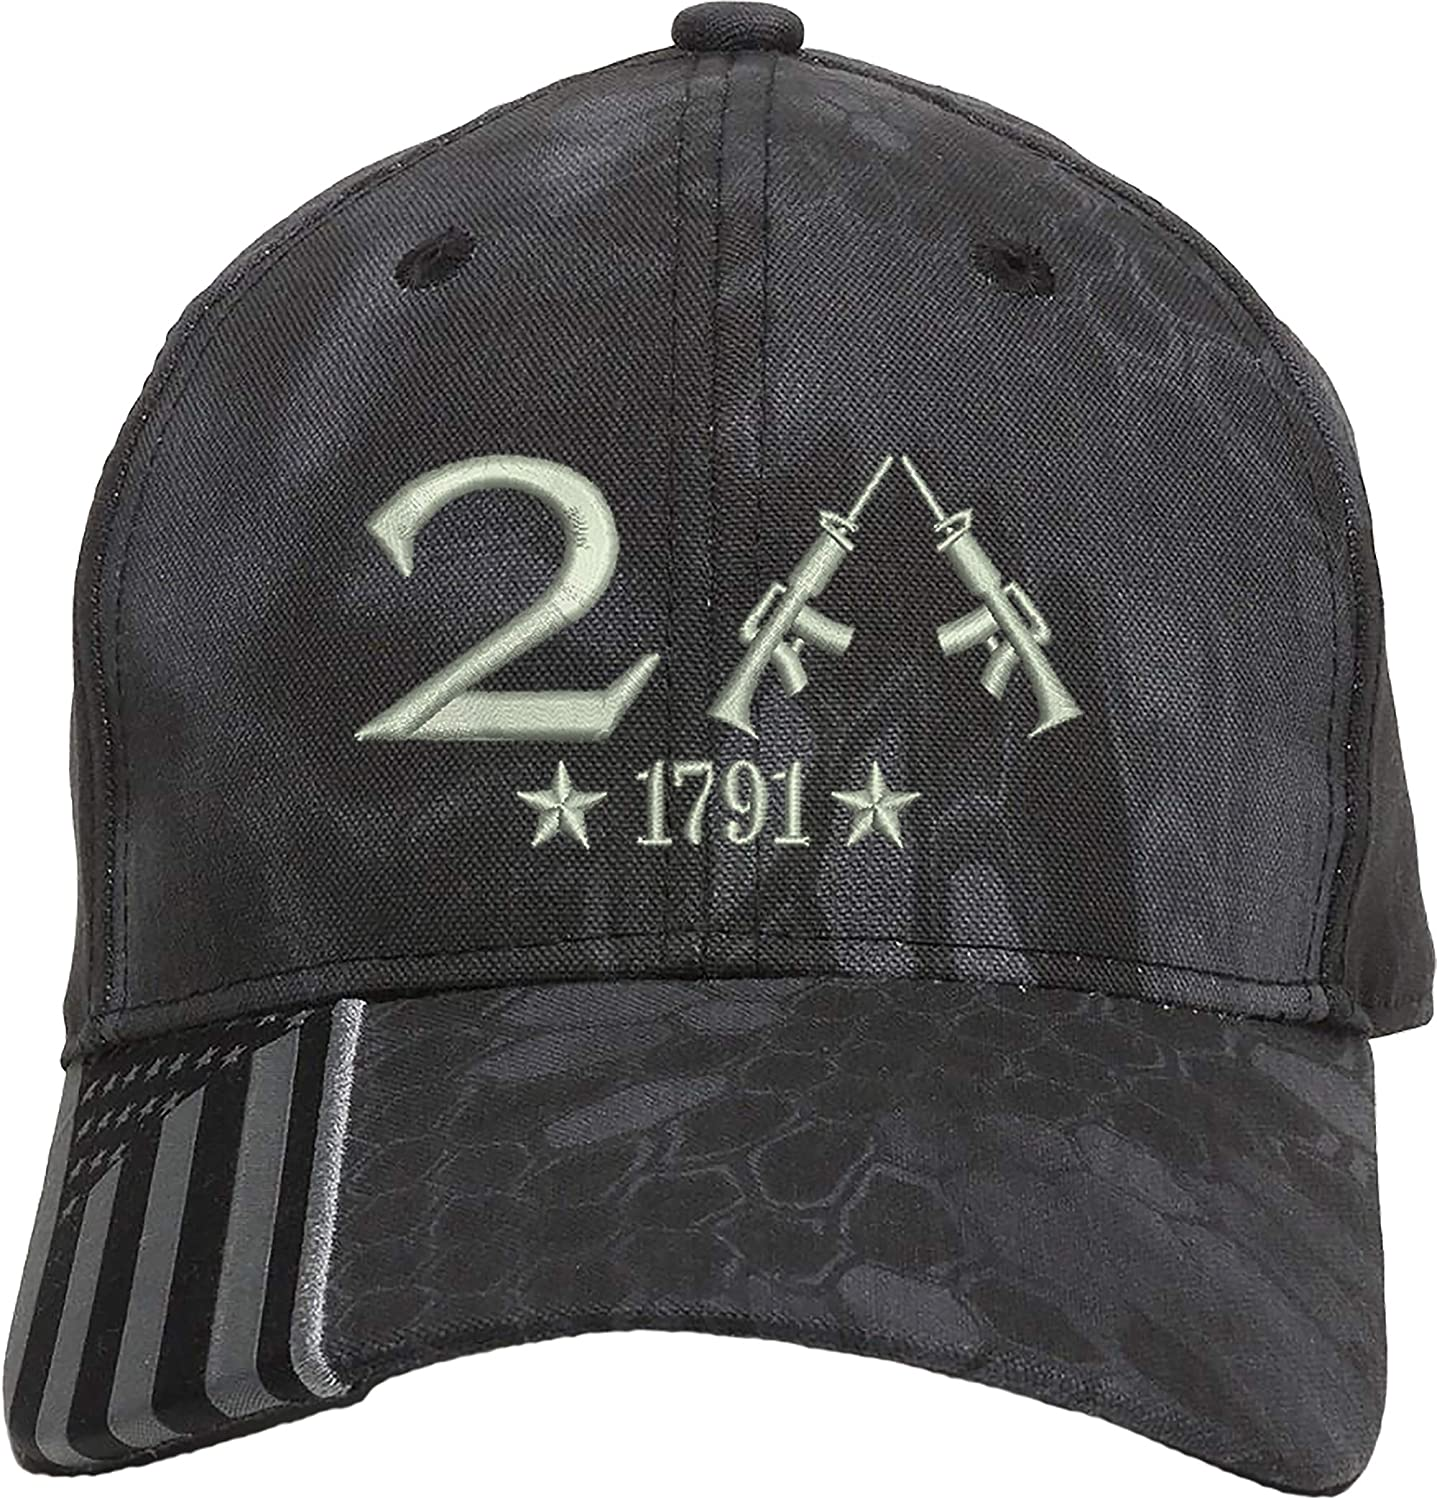 AmazingShirts Only 2nd Amendment 1791 AR15 Guns Right Freedom Embroidered One Size Fits All Structured Hats